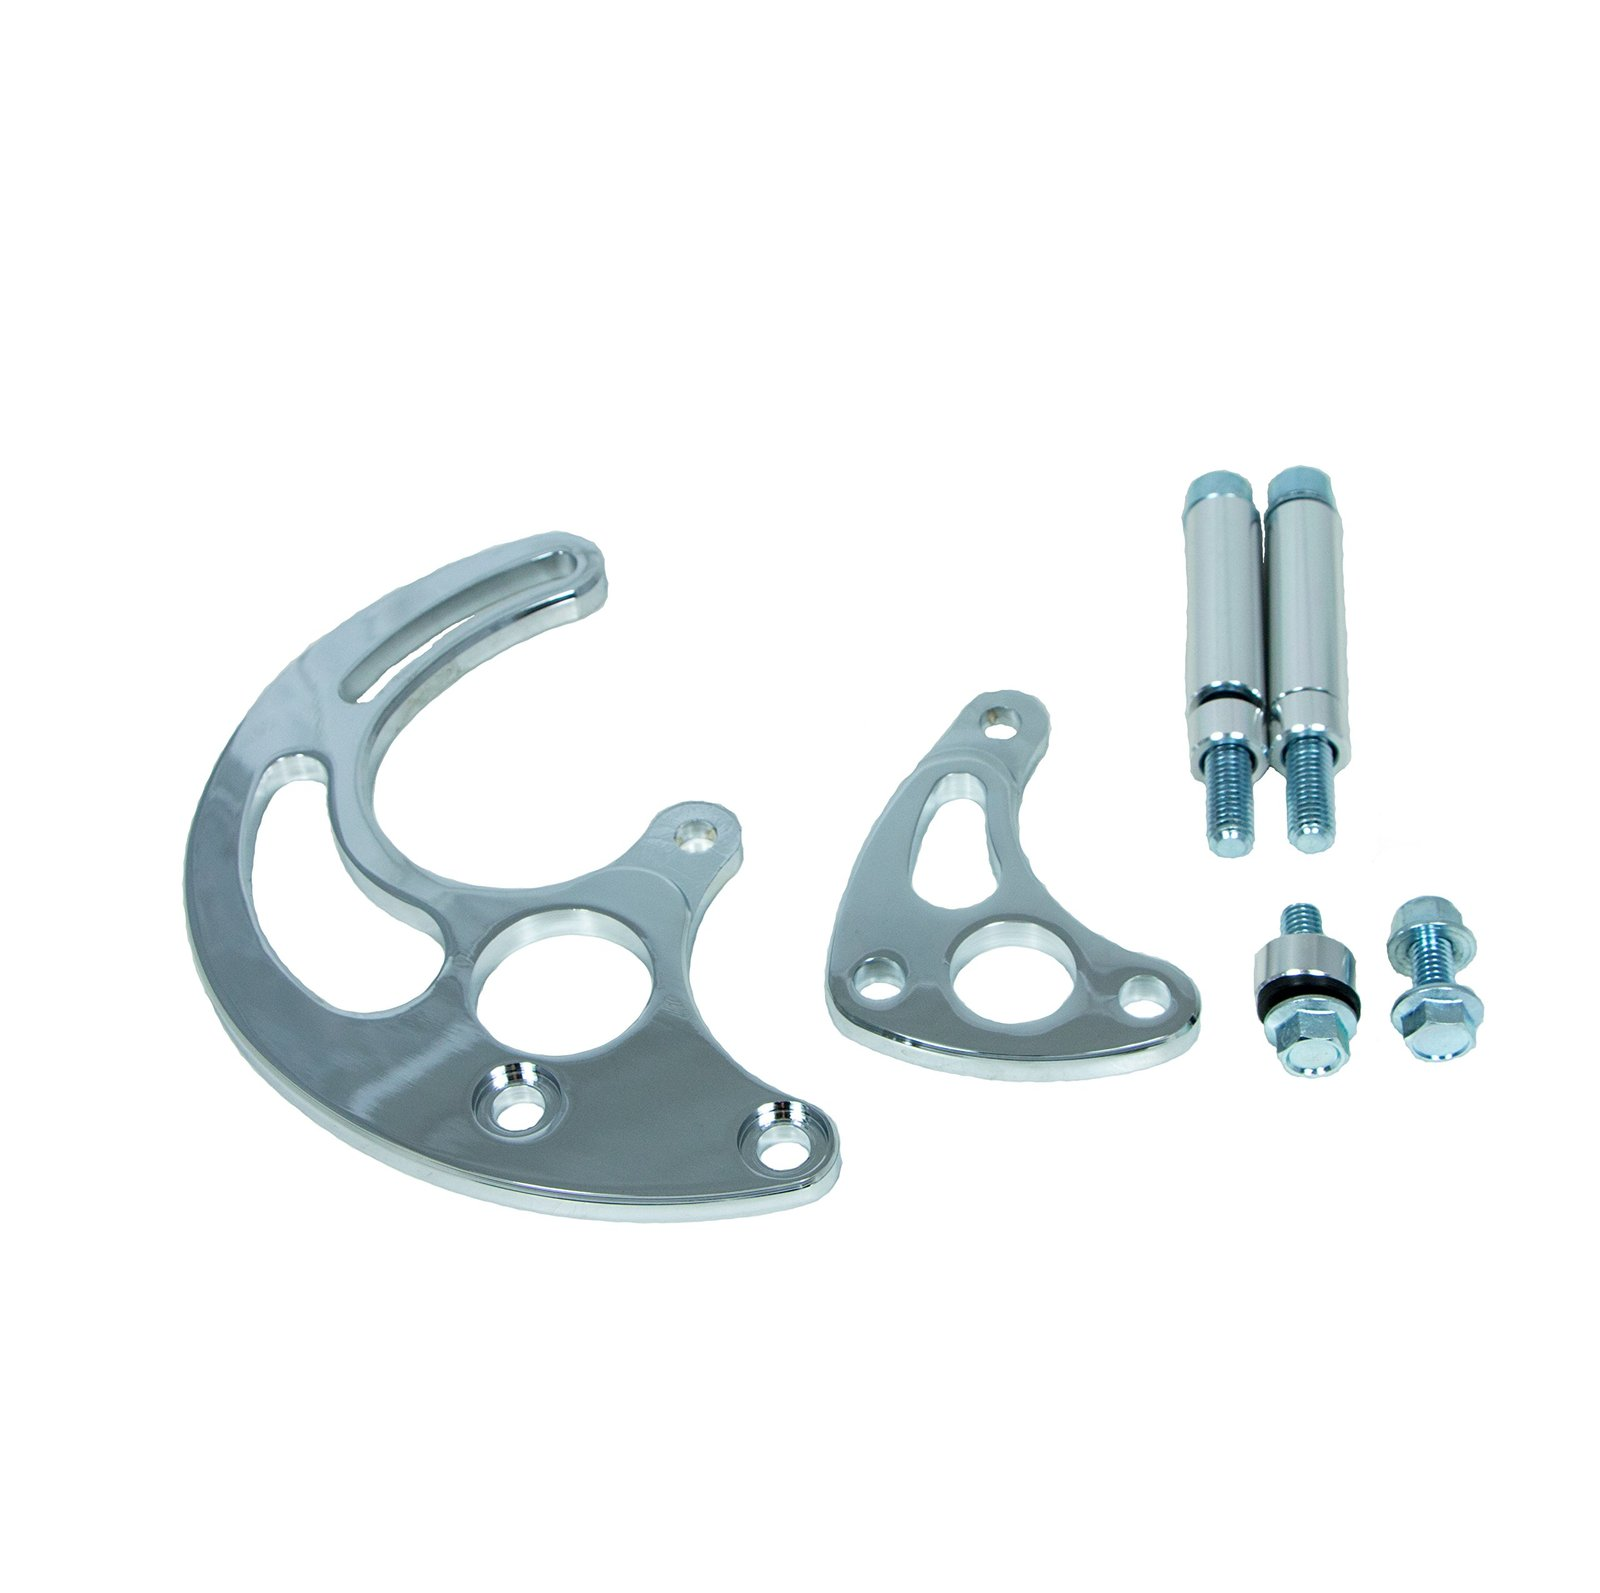 Top Street Performance JM9115C Chrome Power Steering Pump Bracket Kit for Lon...